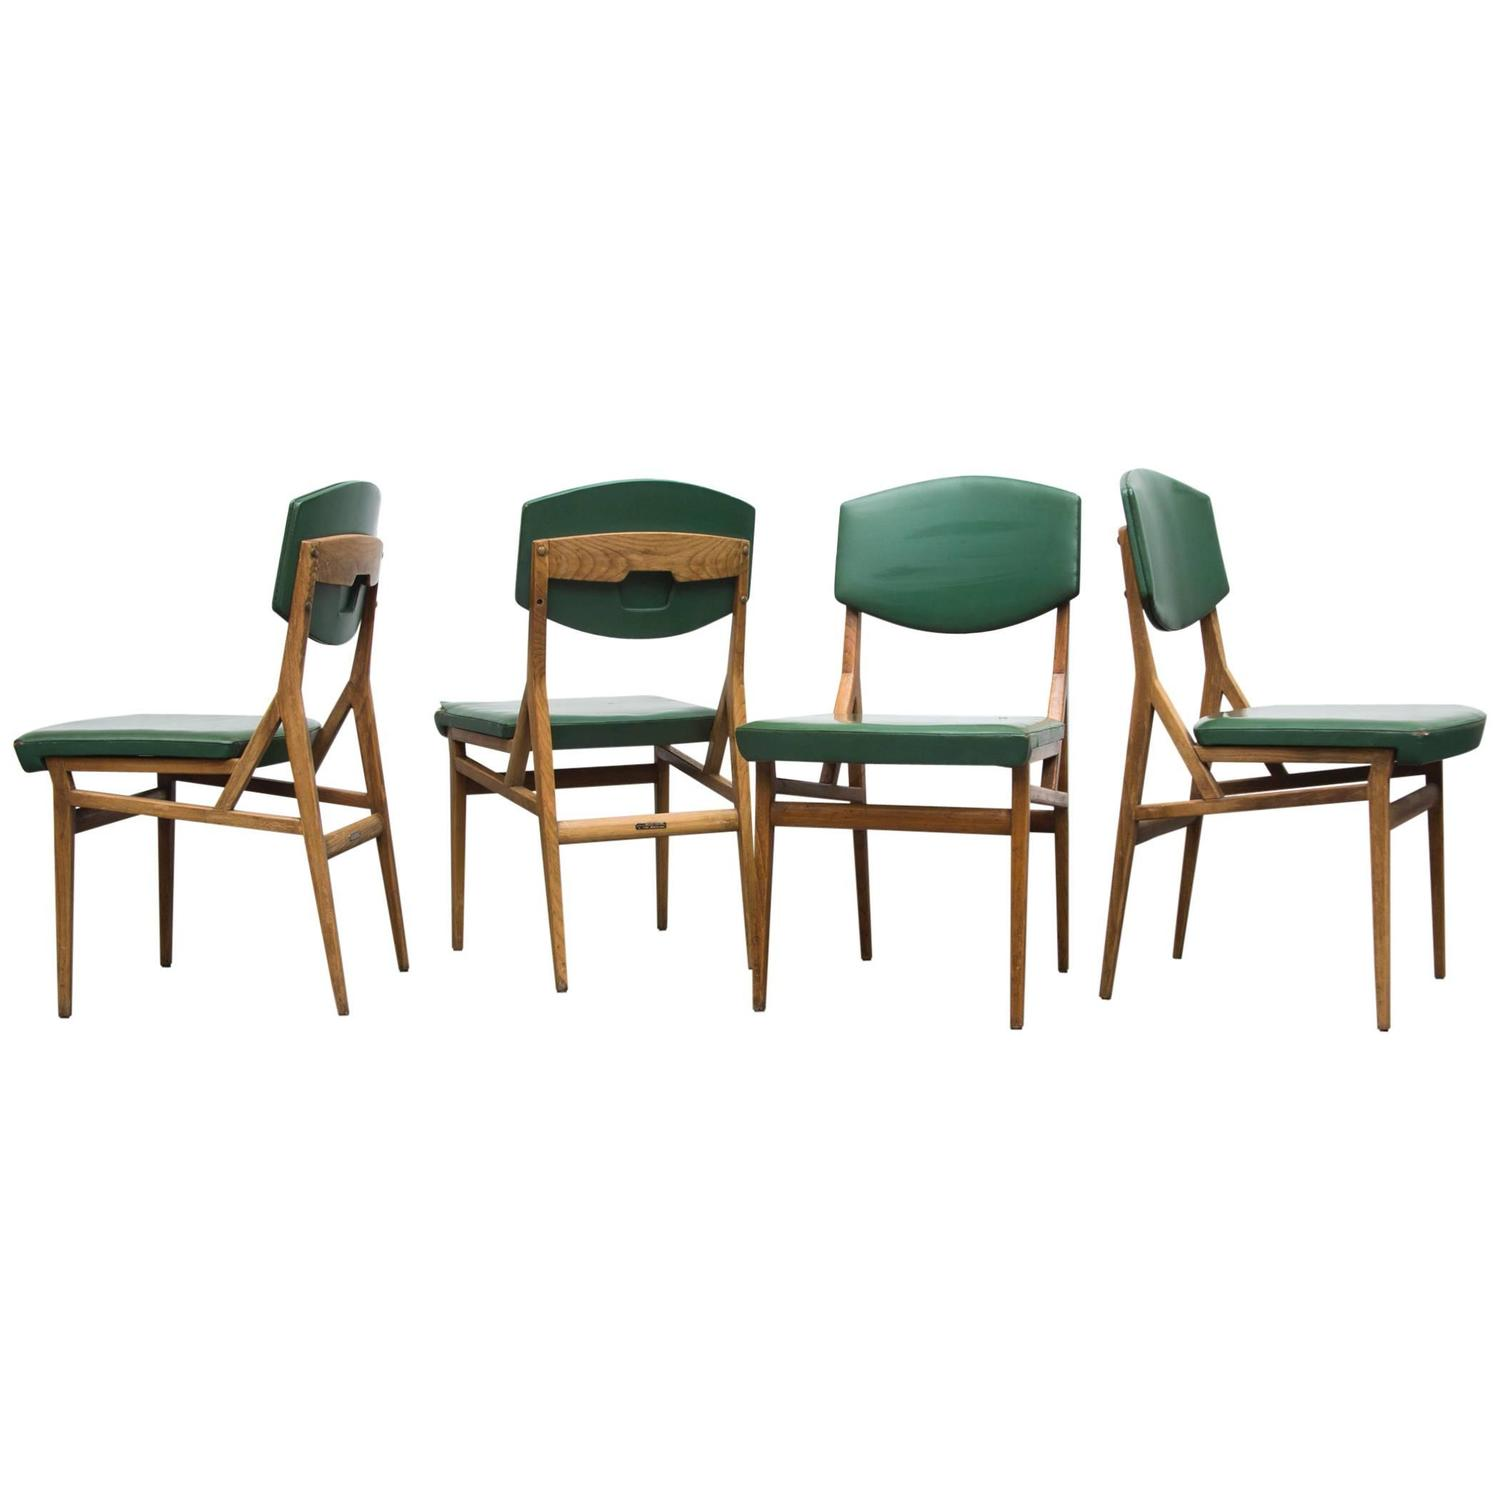 Gio Ponti Cassina Set of Four Dining Chairs at 1stdibs